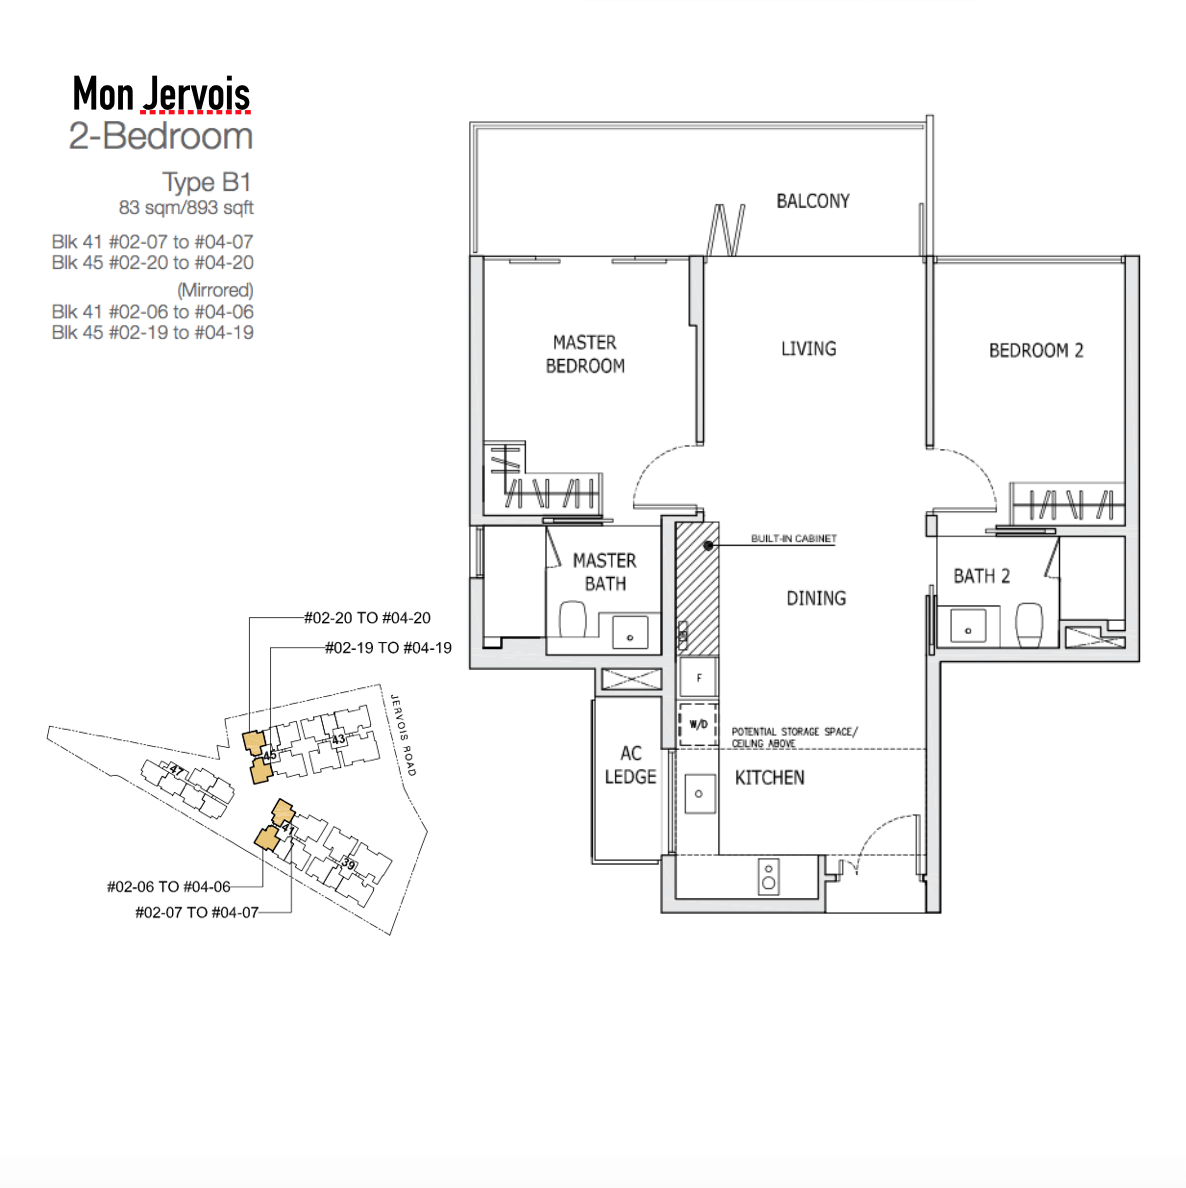 Mon Jervois - Floor Plan Type B1 893sqft 2-Bedroom